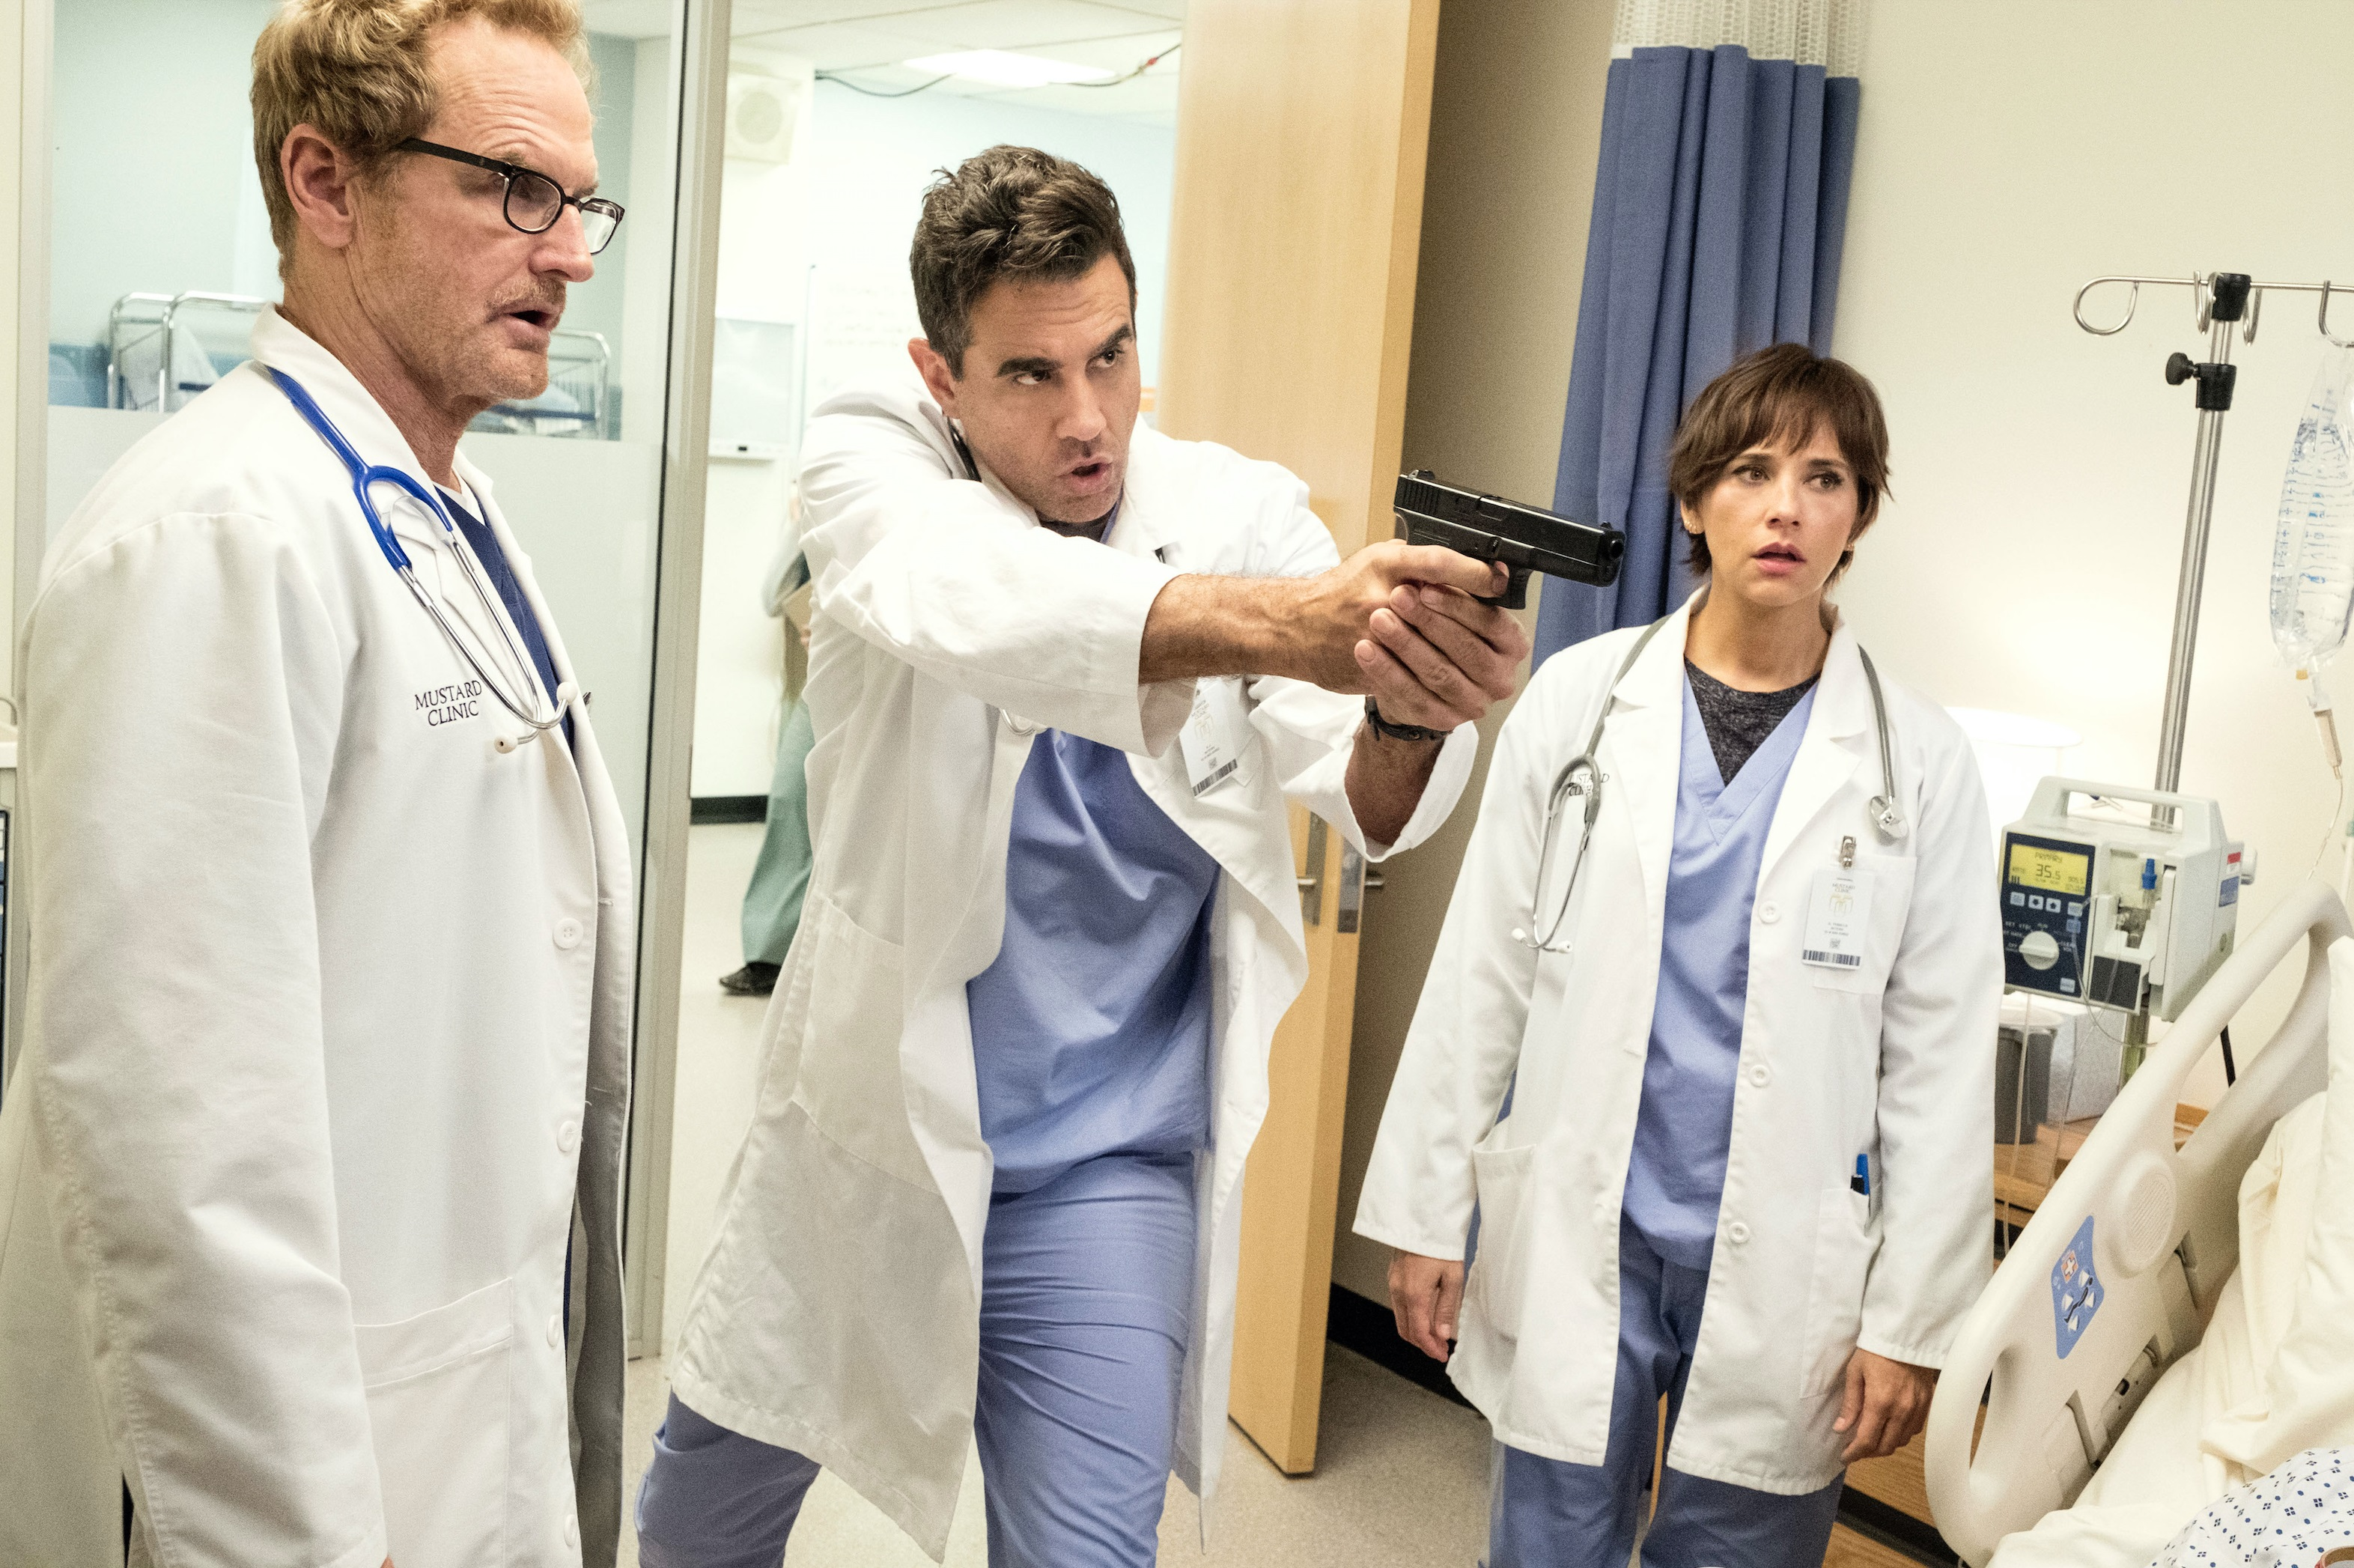 Andree Vermeulen Nude angie tribeca brings all the fun in season 4 - solzy at the